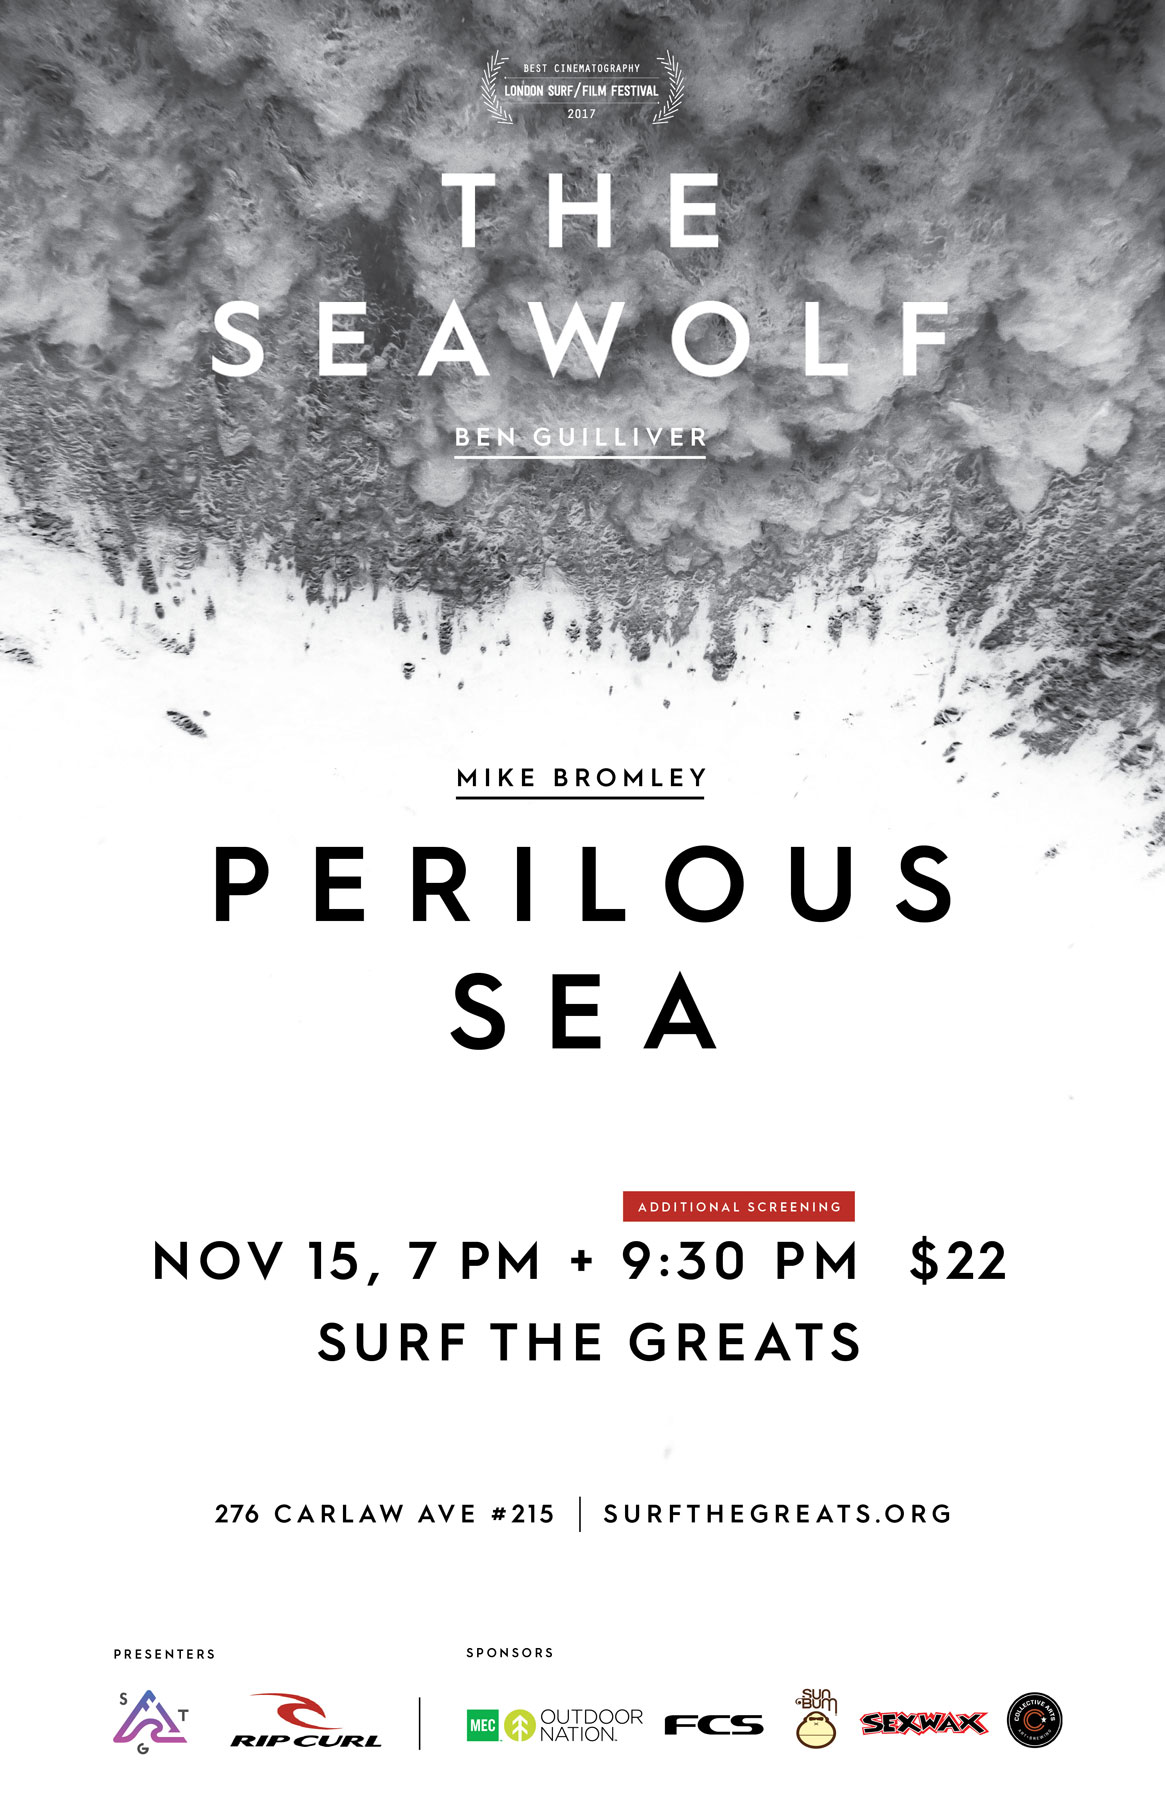 The Seawolf + Perilous Sea Film Premiere Toronto